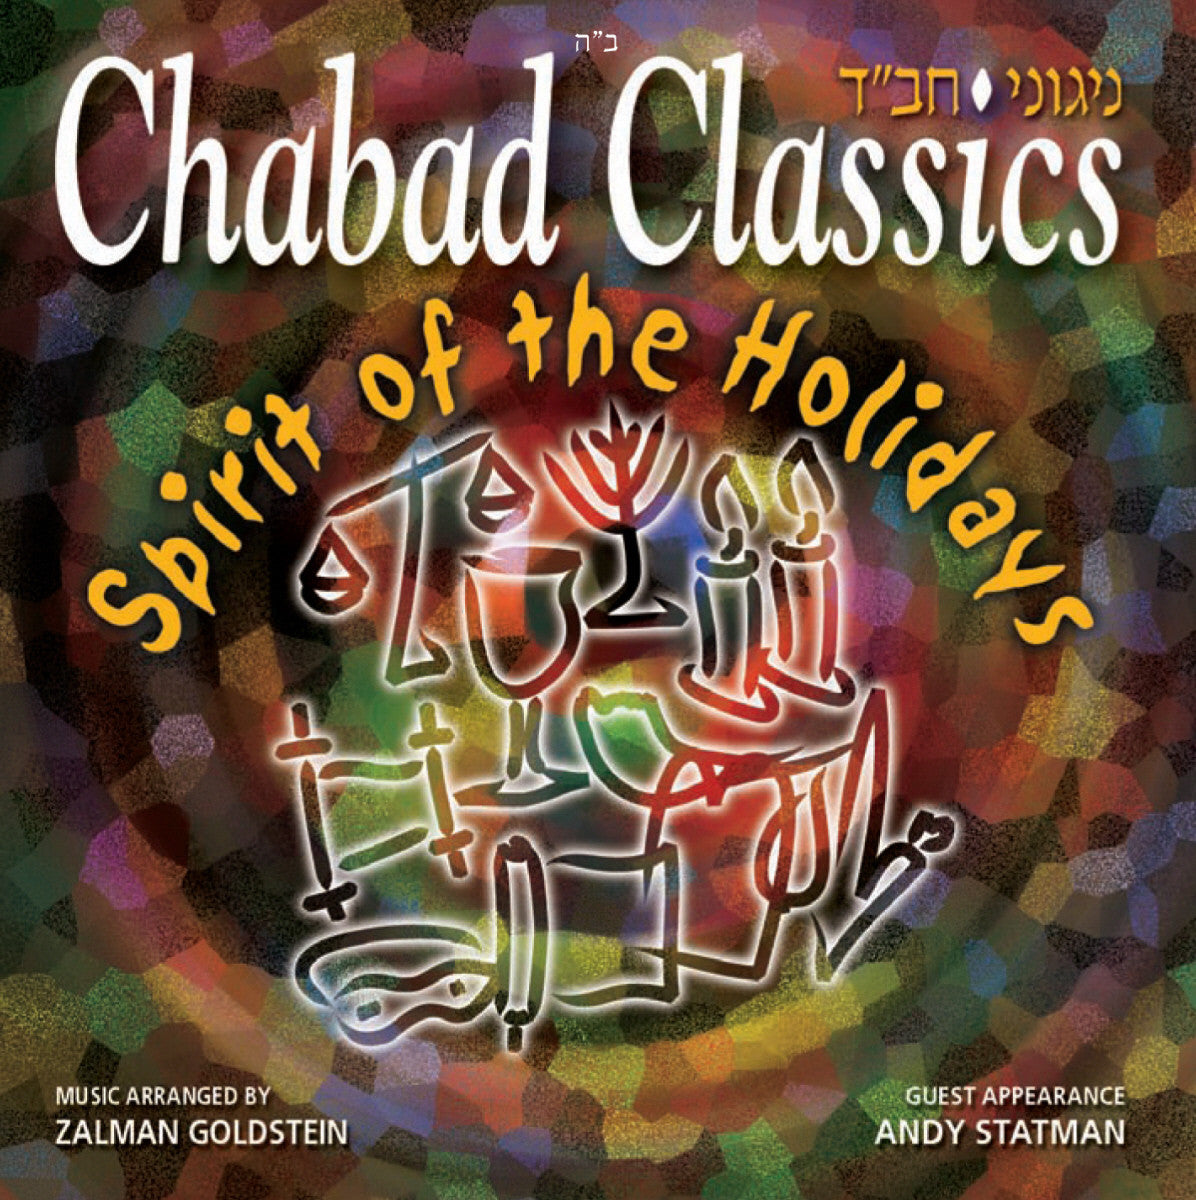 Andy Statman - Chabad Classics IV - Spirit Of The Holidays